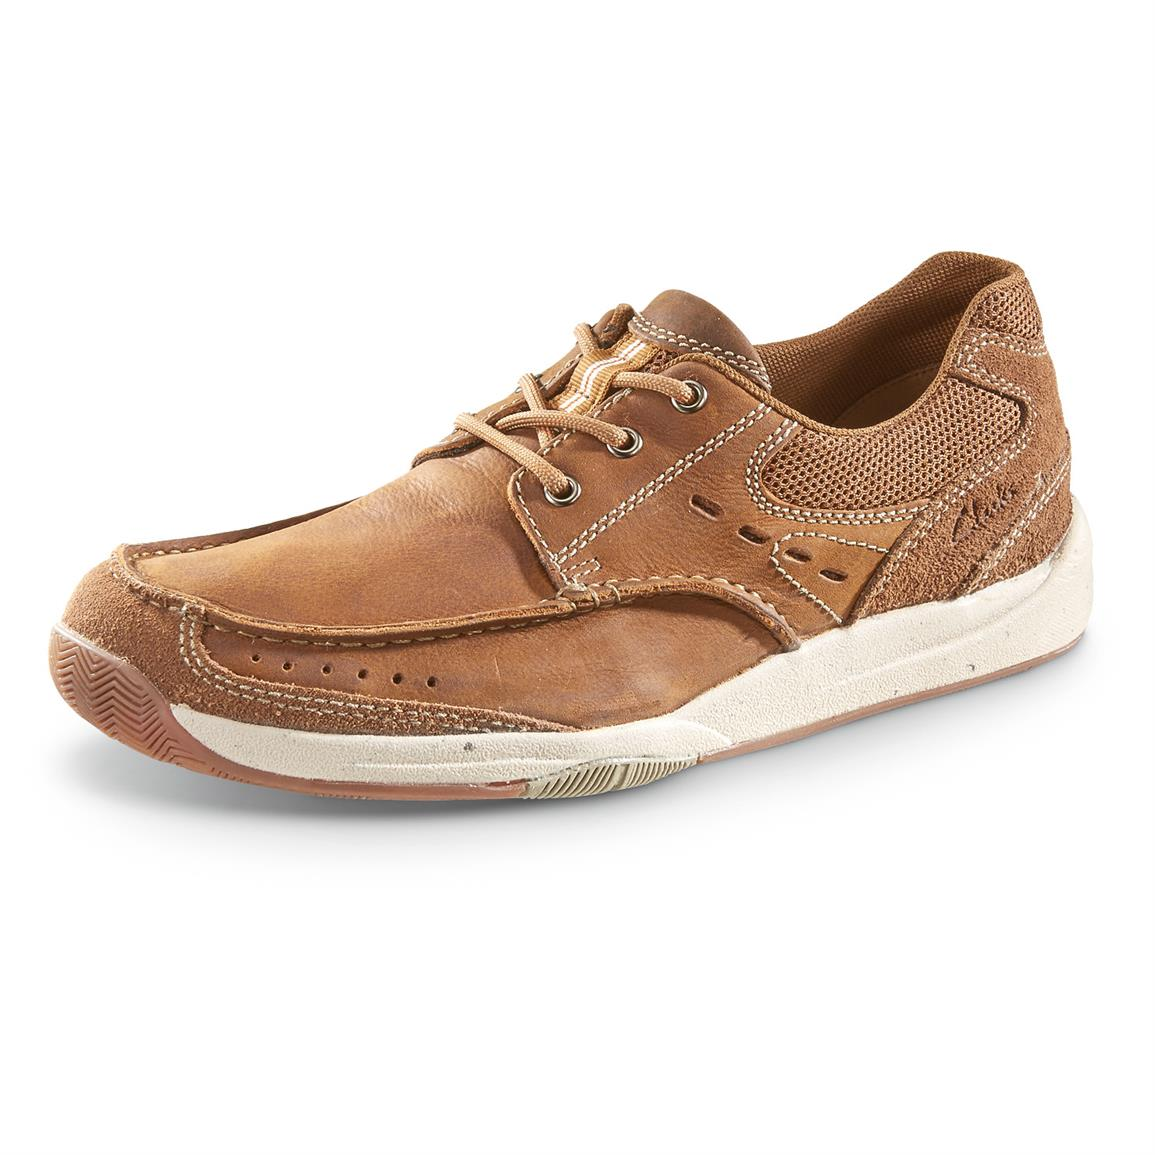 Clarks Allston Edge Casual Shoes, Tan Nubuck